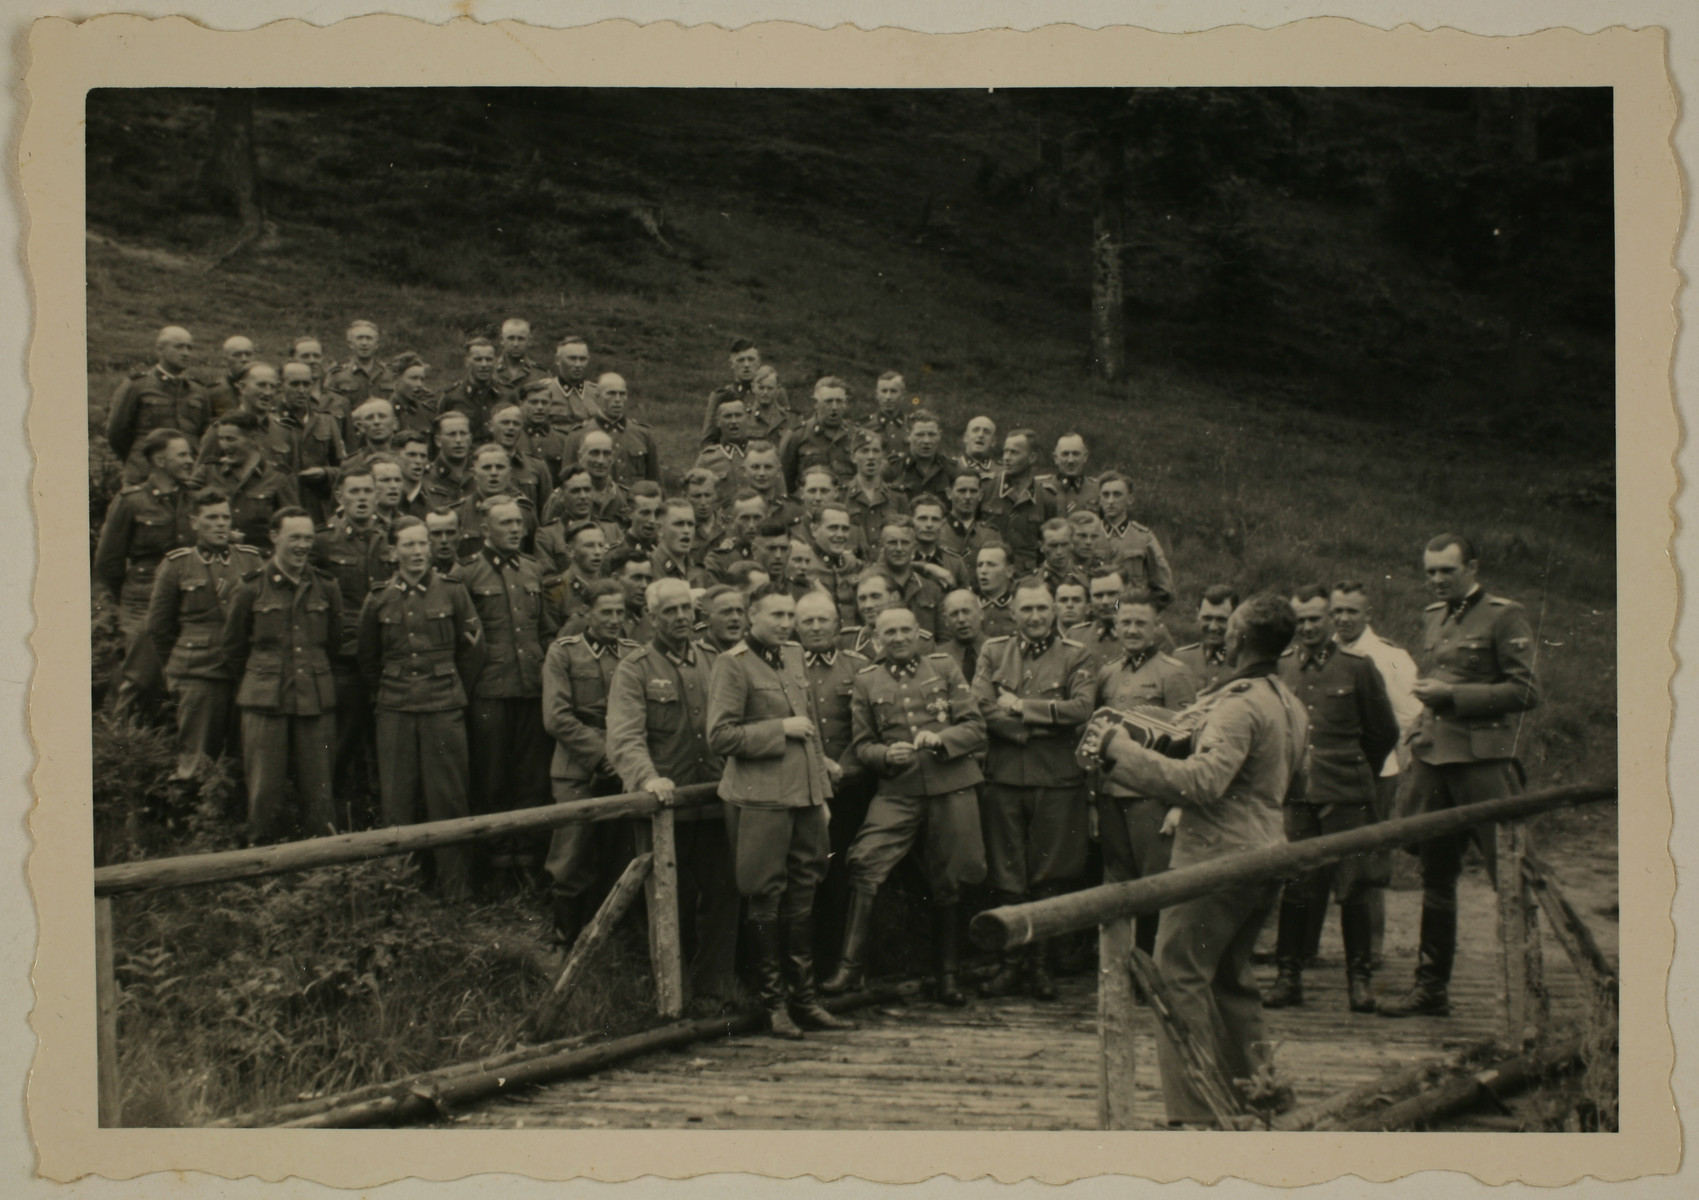 An accordionist leads a sing-along for SS officers at their retreat at Solahuette outside Auschwitz.  Pictured in the front row are Karl Hoecker, Otto Moll, Rudolf Hoess, Richard Baer, Josef Kramer (standing slightly behind Hoessler and partially obscured), Franz Hoessler, Josef Mengele, and Walter Schmidetzki.  Hermann Buch is in the center.  Konrad Wiegand, head of the Fahrbereitschaft (car and truck pool) is in the middle.  [Based on the officers visiting Solahutte, we surmise that the photographs were taken to honor Rudolf Hoess who completed his tenure as garrison senior on July 29.]